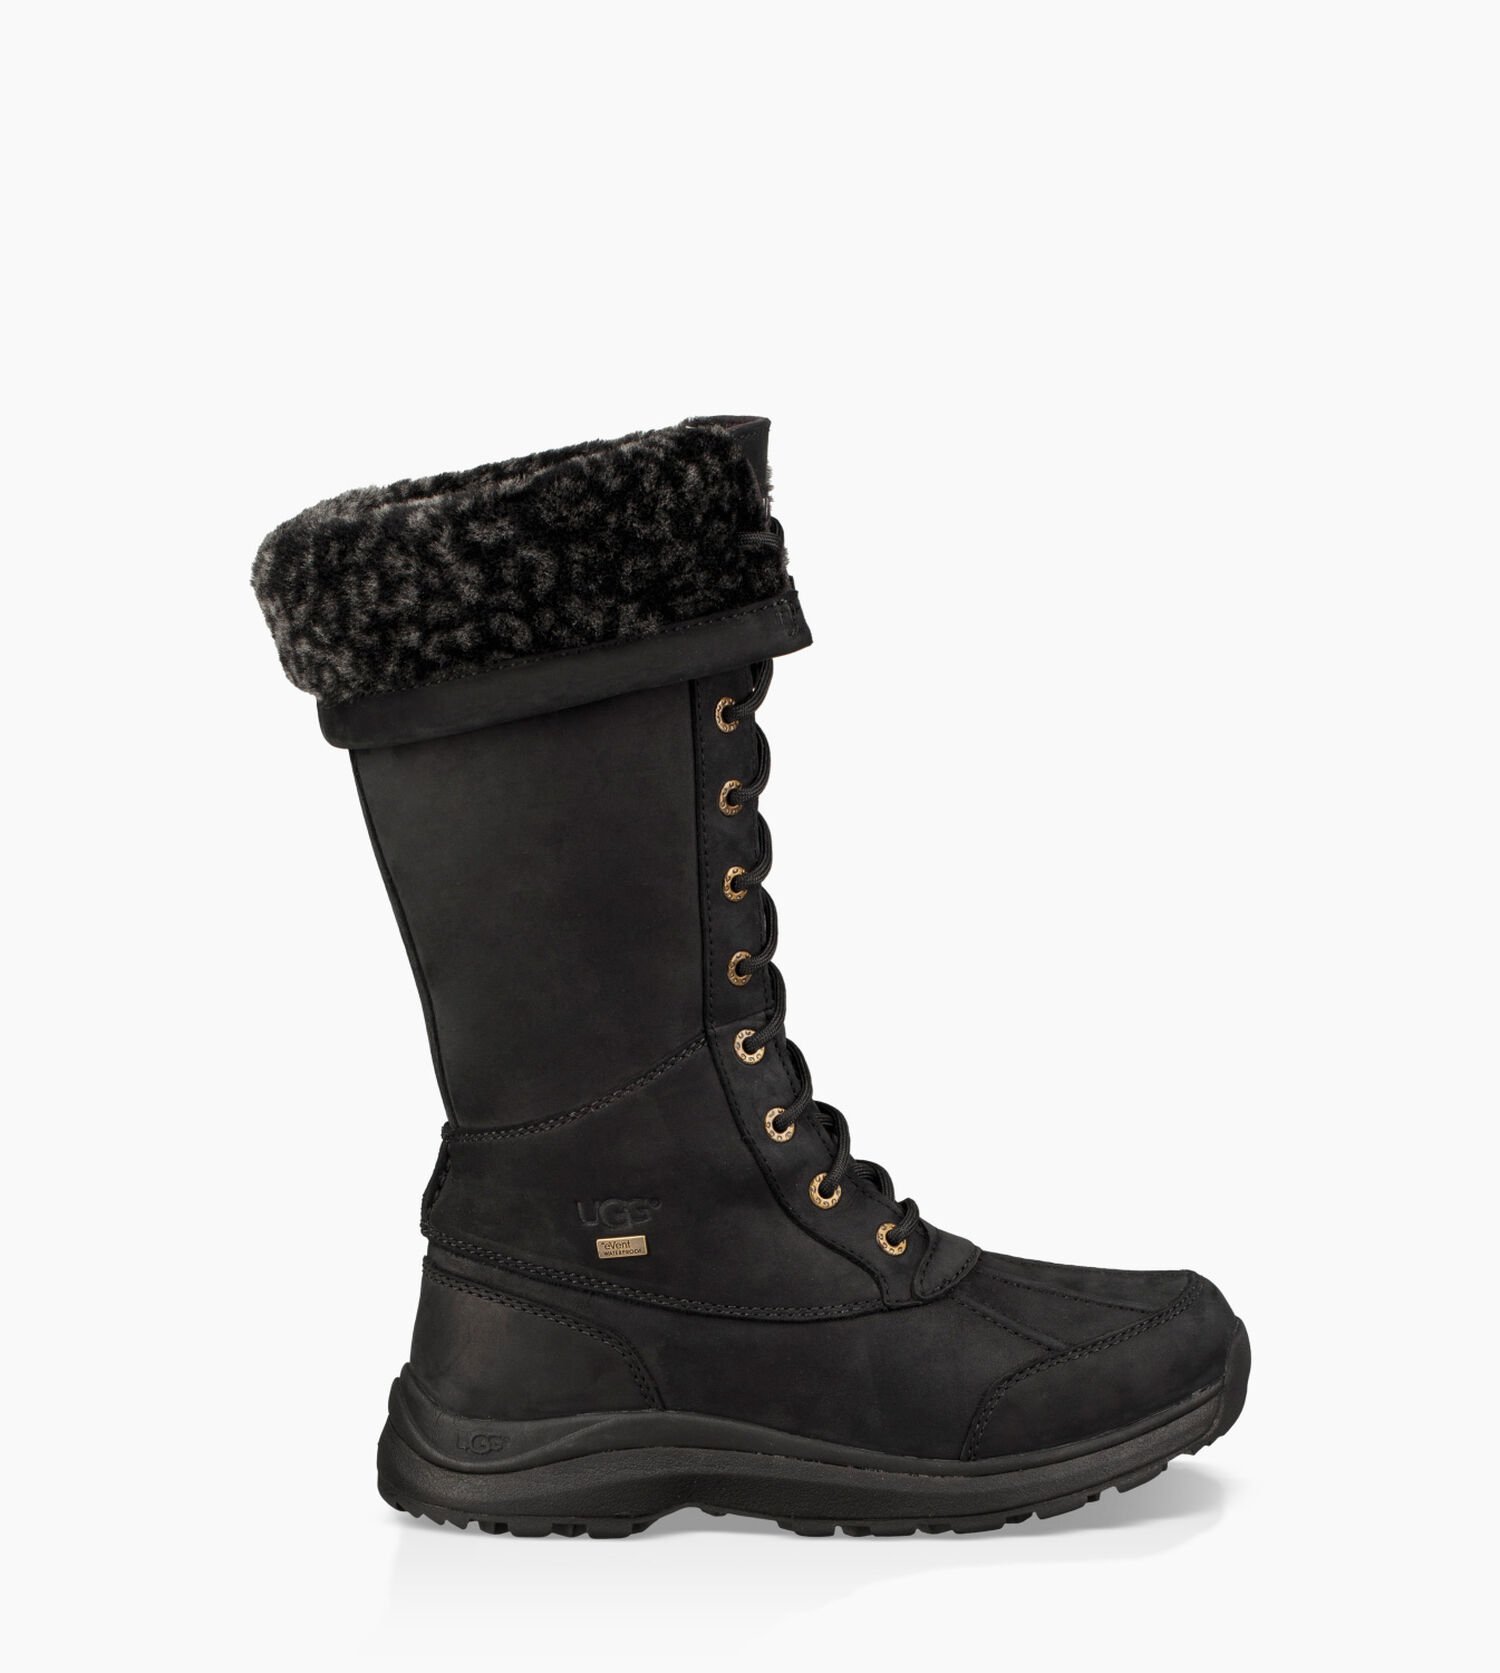 Waterproof Woman S Boots Fashionable